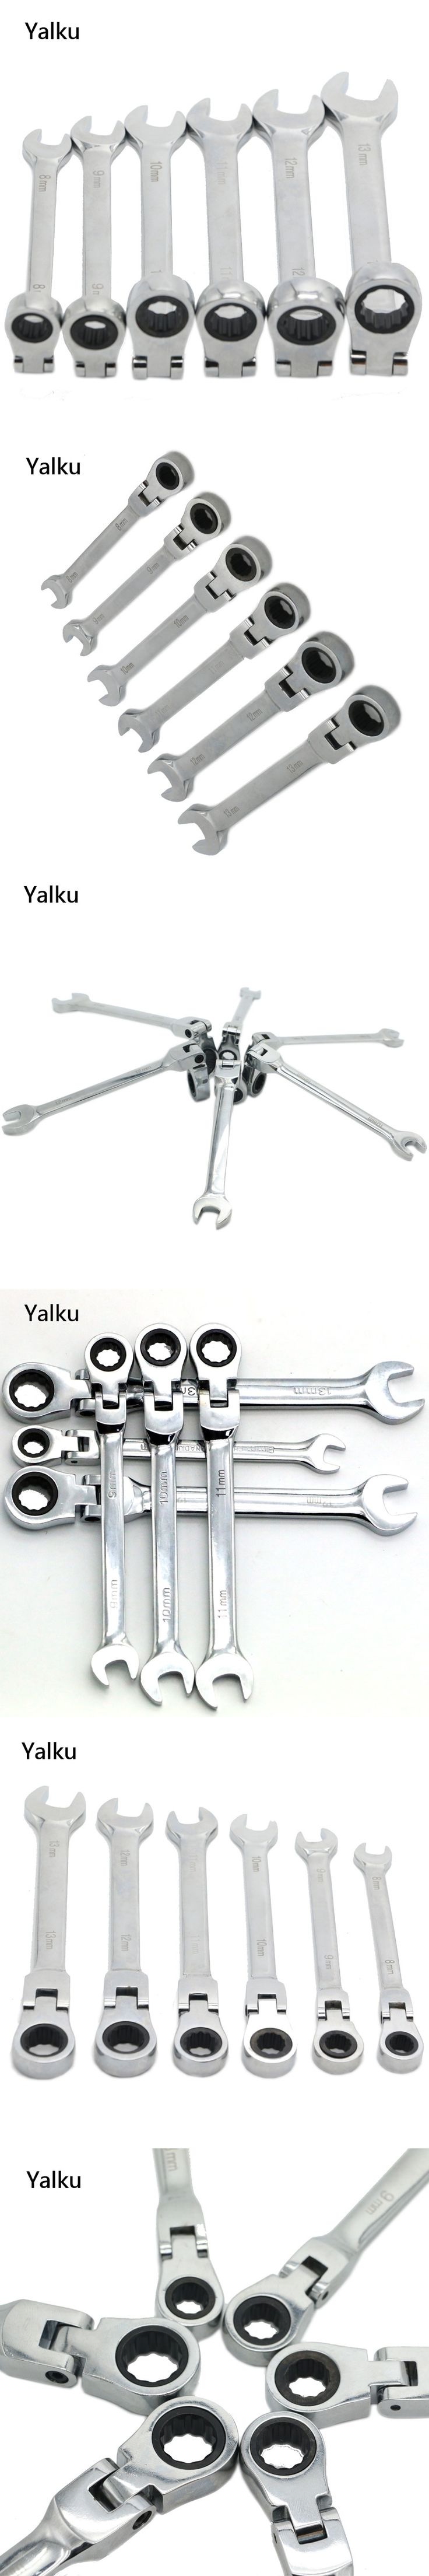 Best 25 spanner tool ideas on pinterest man cave tool shed man yalku 8 13mm ratchet gears wrench set flexible open end wrenches repair tools to bike buycottarizona